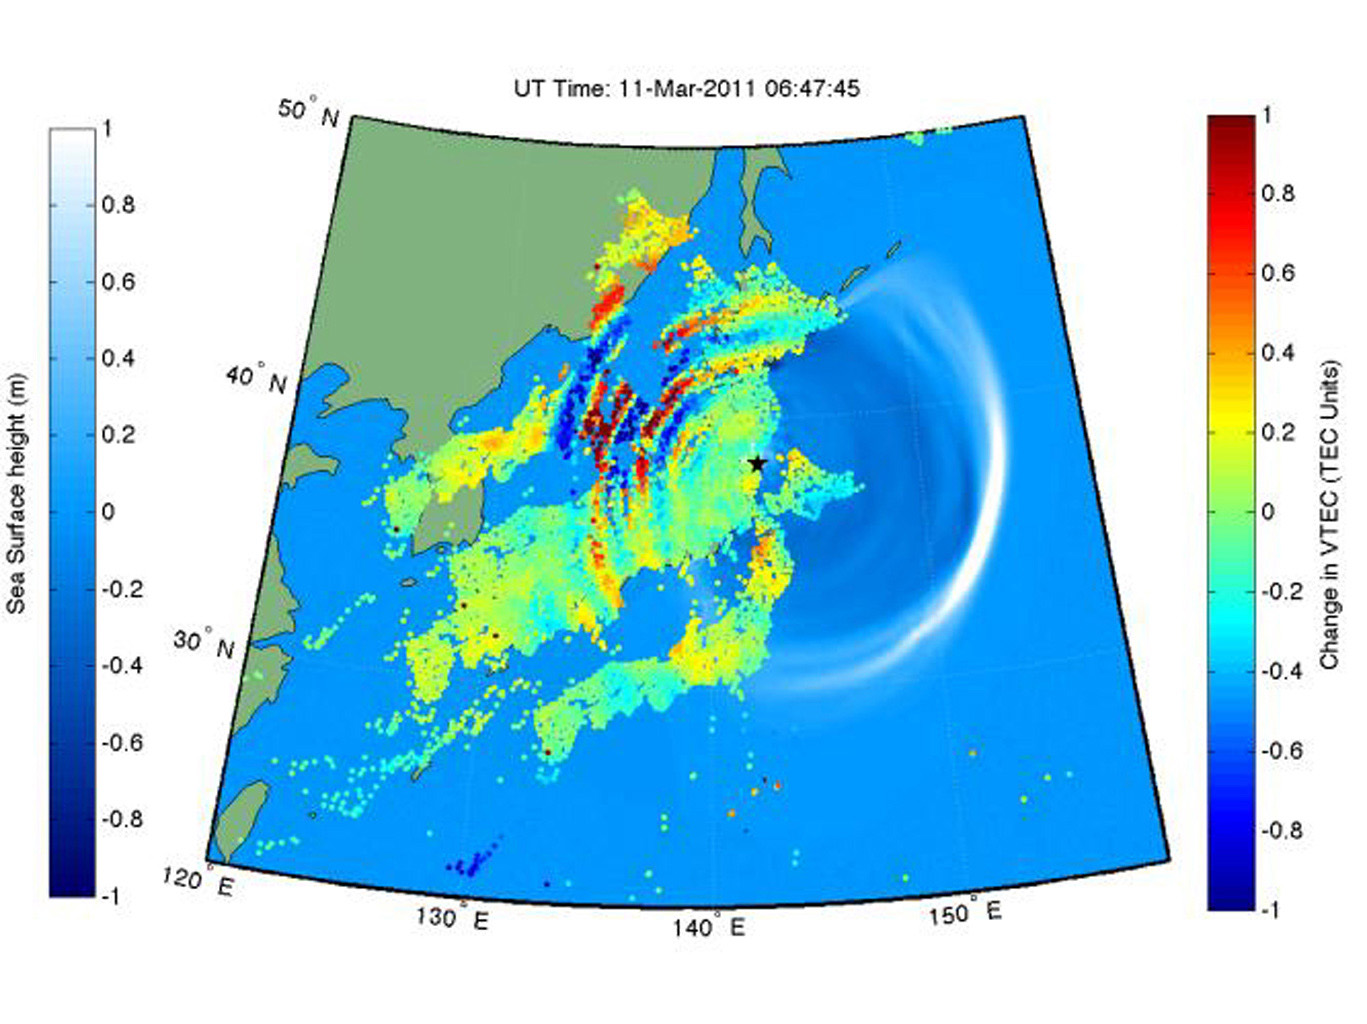 This shows how waves of energy from the Tohoku-Oki earthquake and tsunami of March 11, 2011, pierced through into Earth's upper atmosphere in the vicinity of Japan, disturbing the density of electrons in the ionosphere.